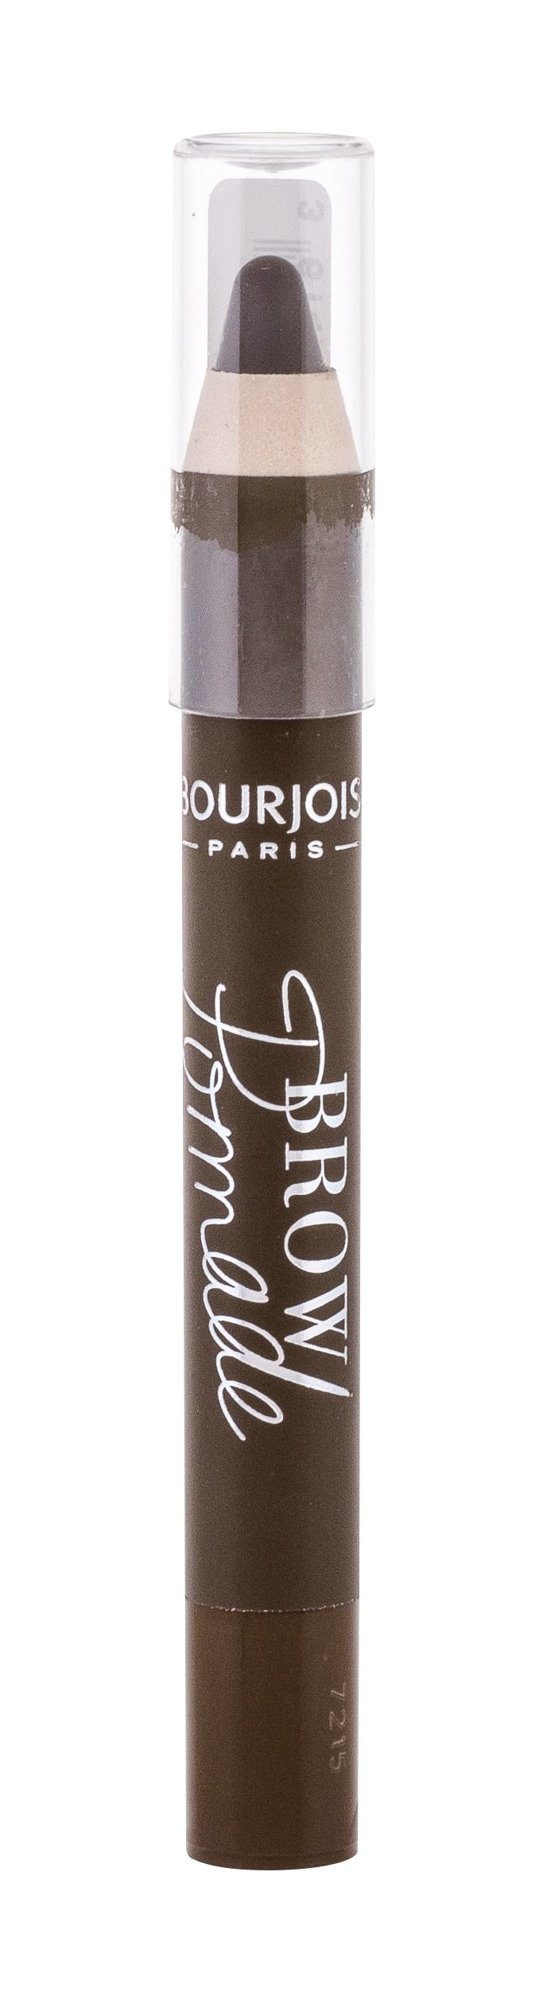 BOURJOIS Paris Brow Pomade Eyebrow Pencil 3,25ml 003 Brun